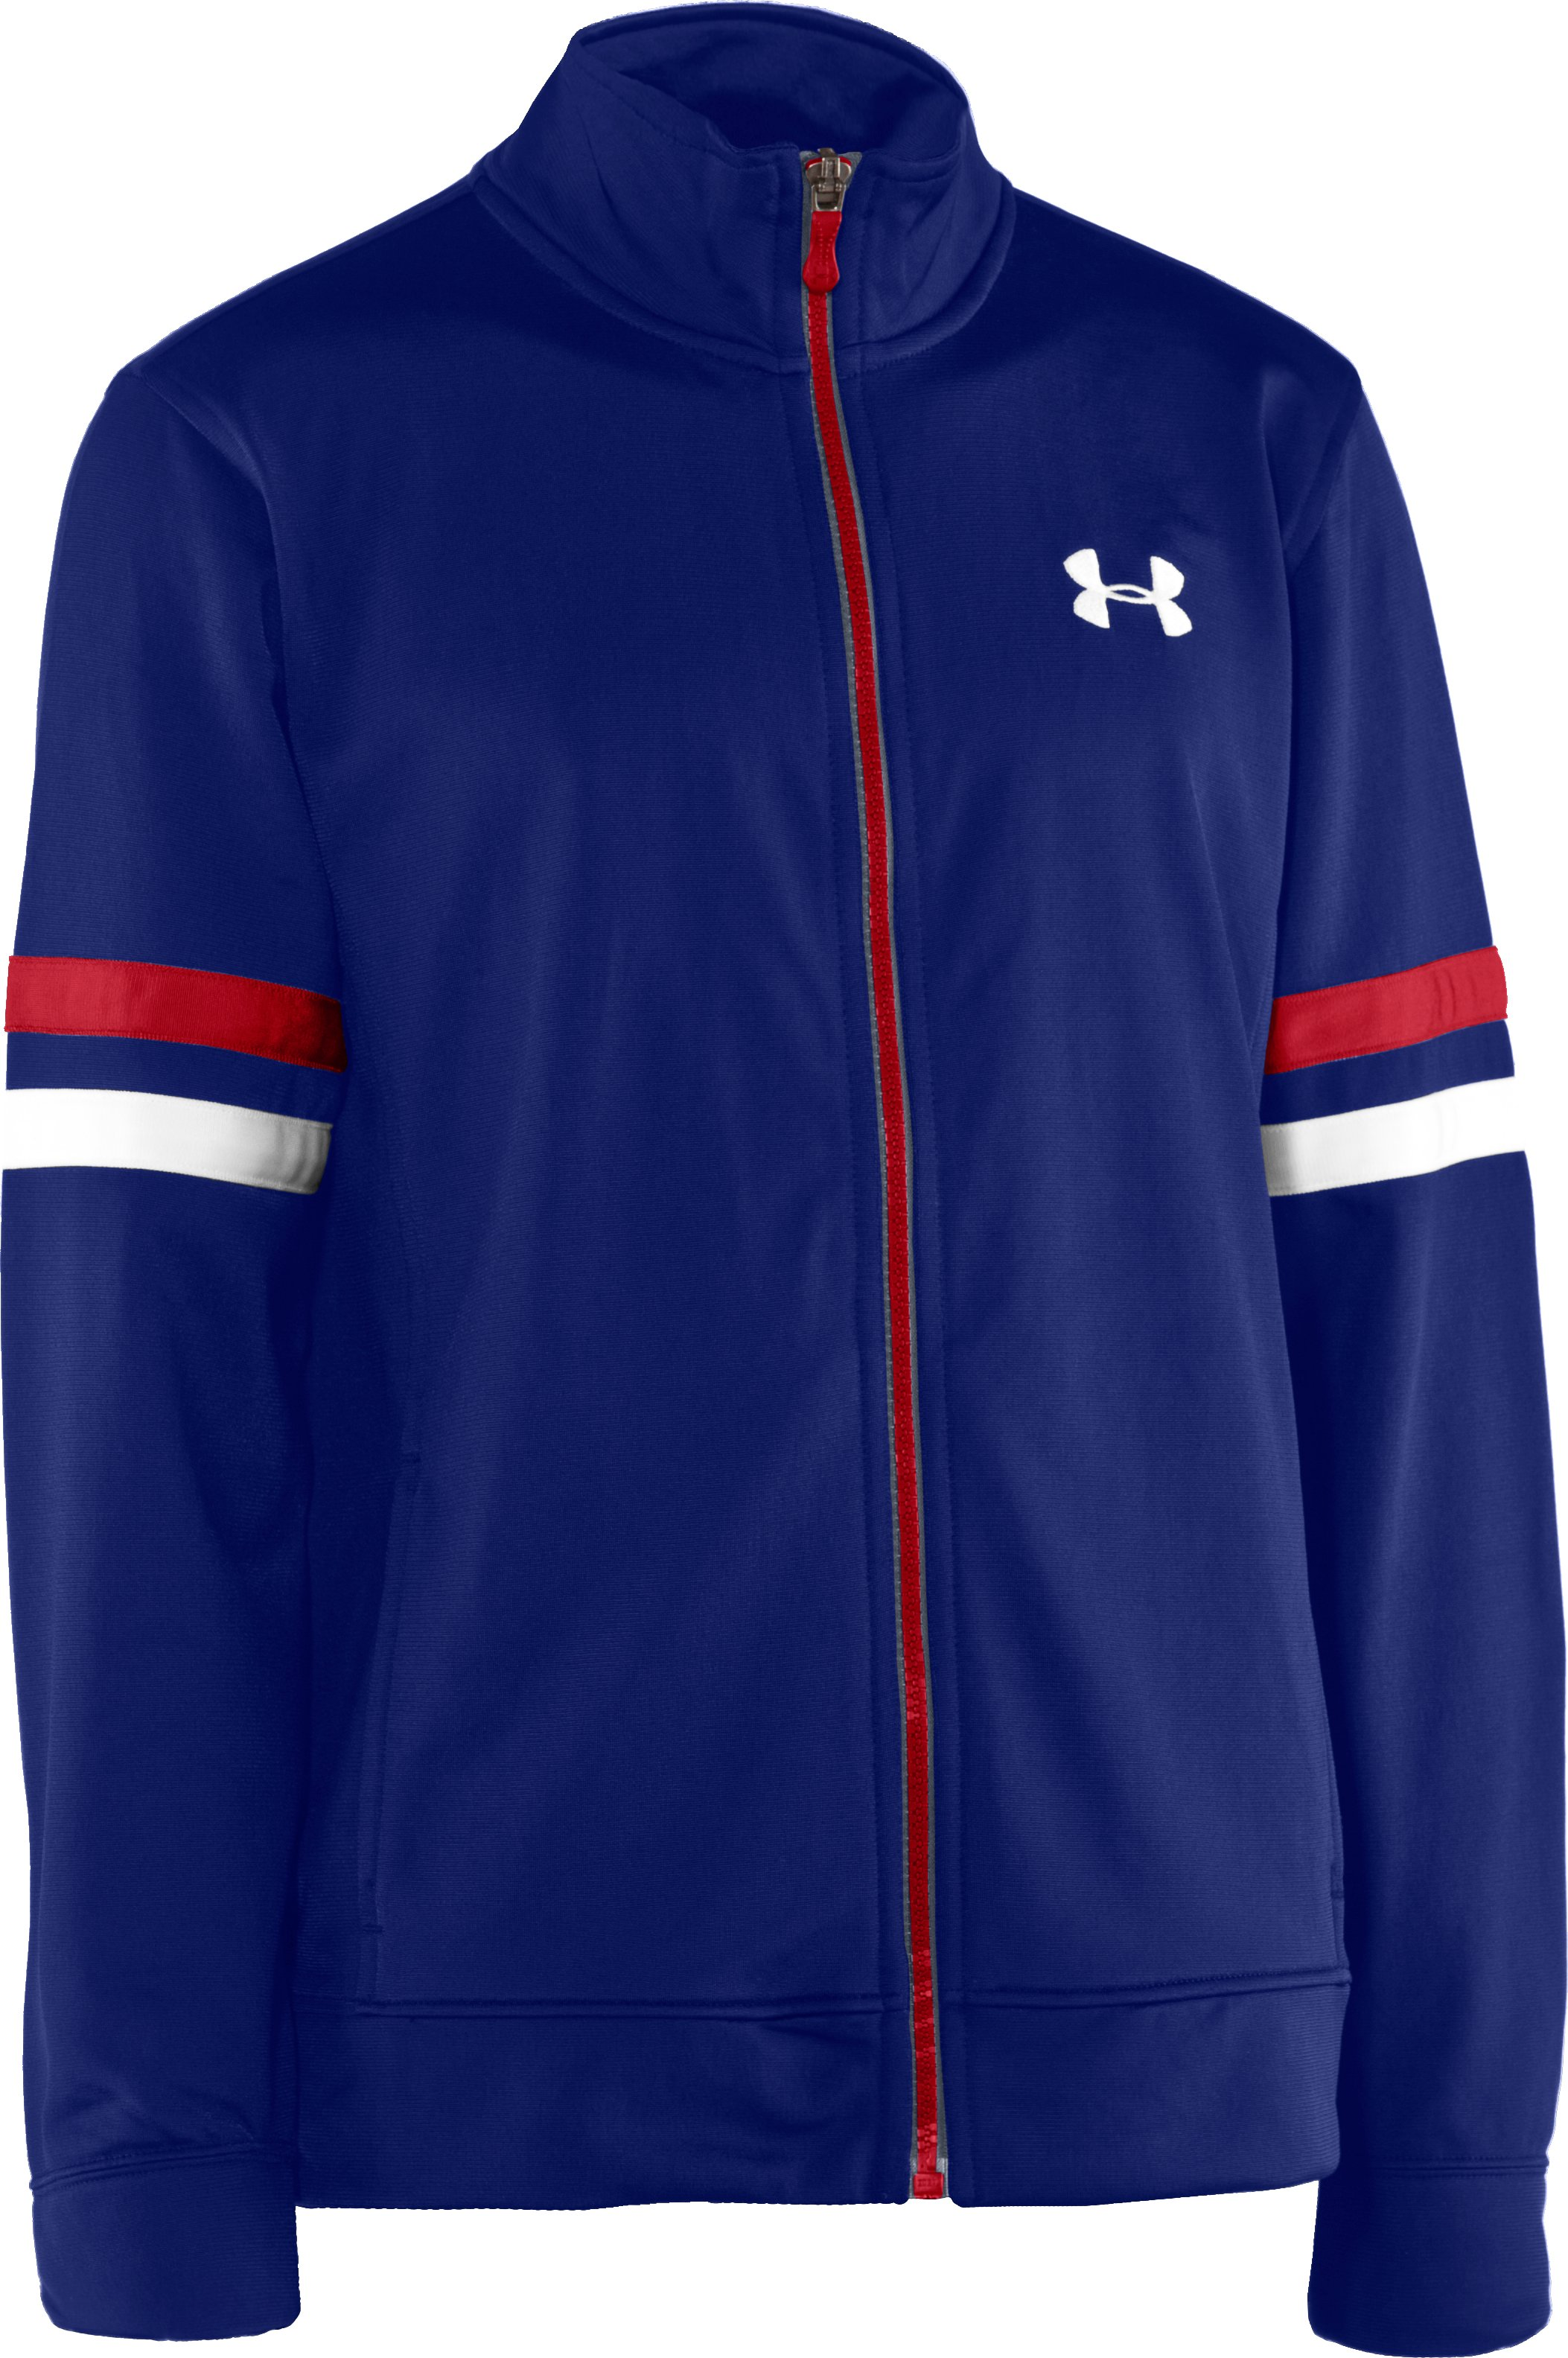 Boys' UA Brawler Warm-Up Jacket, Royal